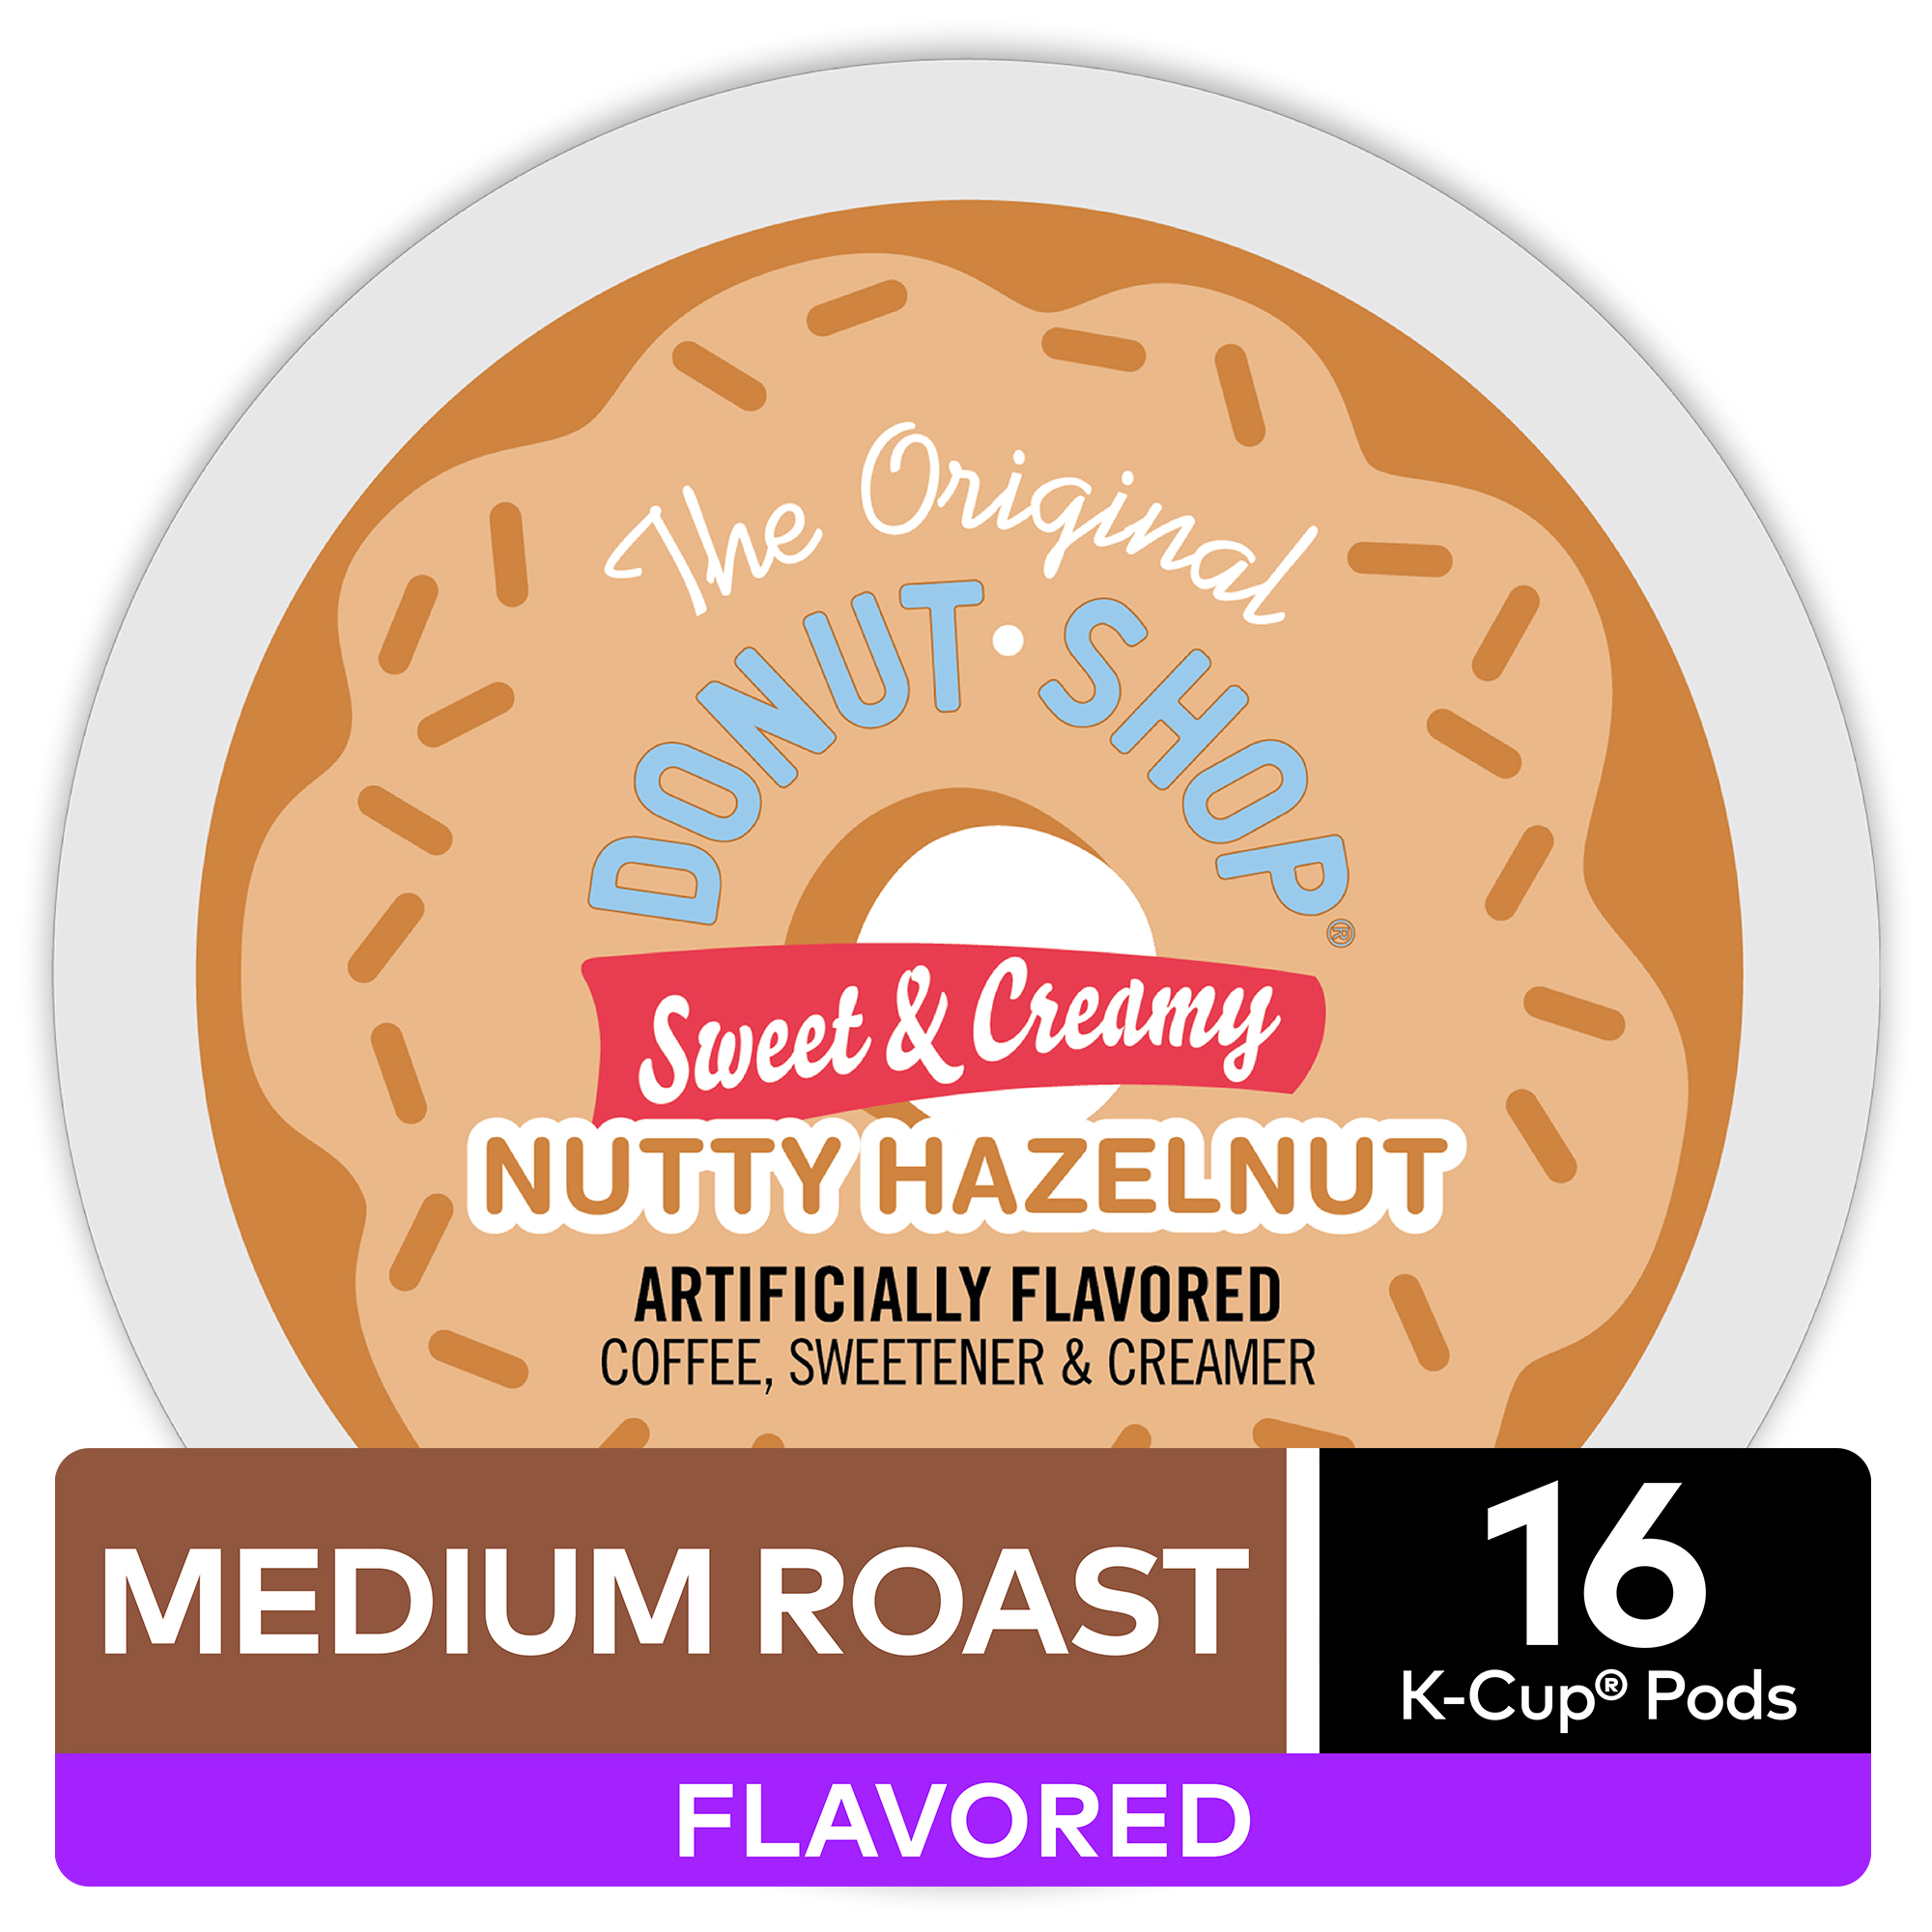 The Original Donut Shop Sweet & Creamy Nutty Hazelnut, Flavored Coffee Keurig K-Cup Pod, Medium Roast, 16 Ct